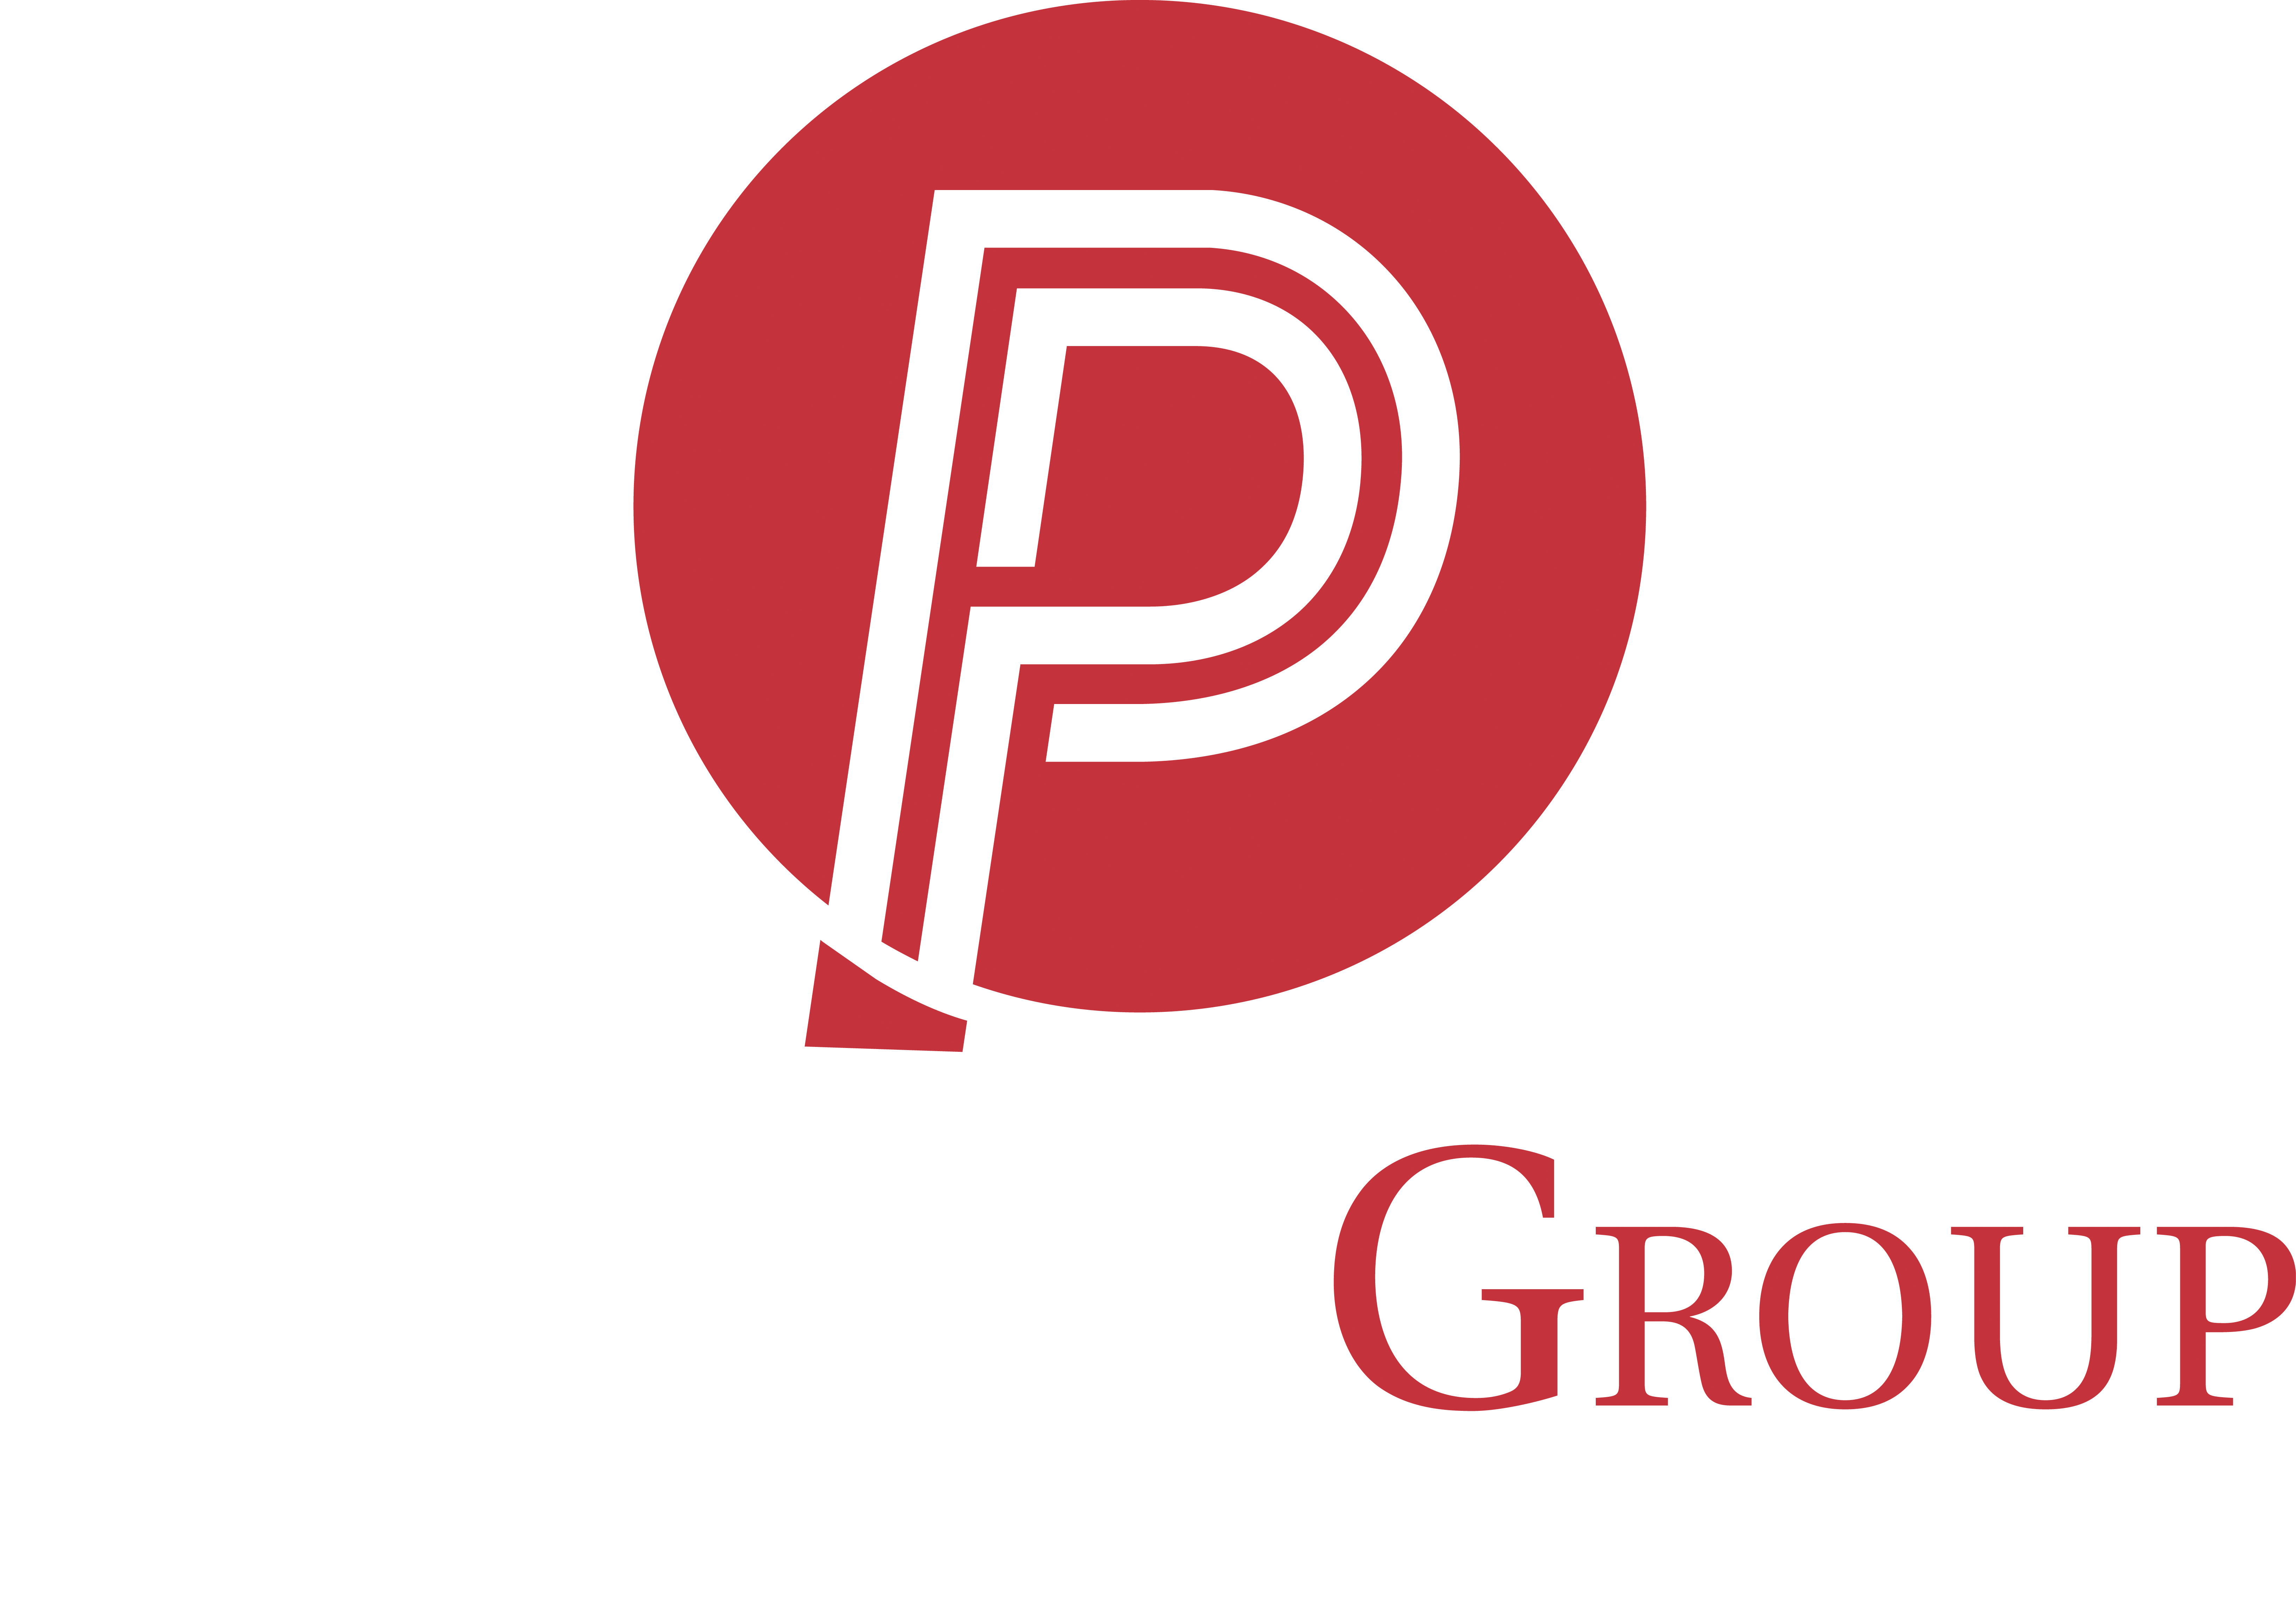 Priority Group Integrated Brand Delivery logo